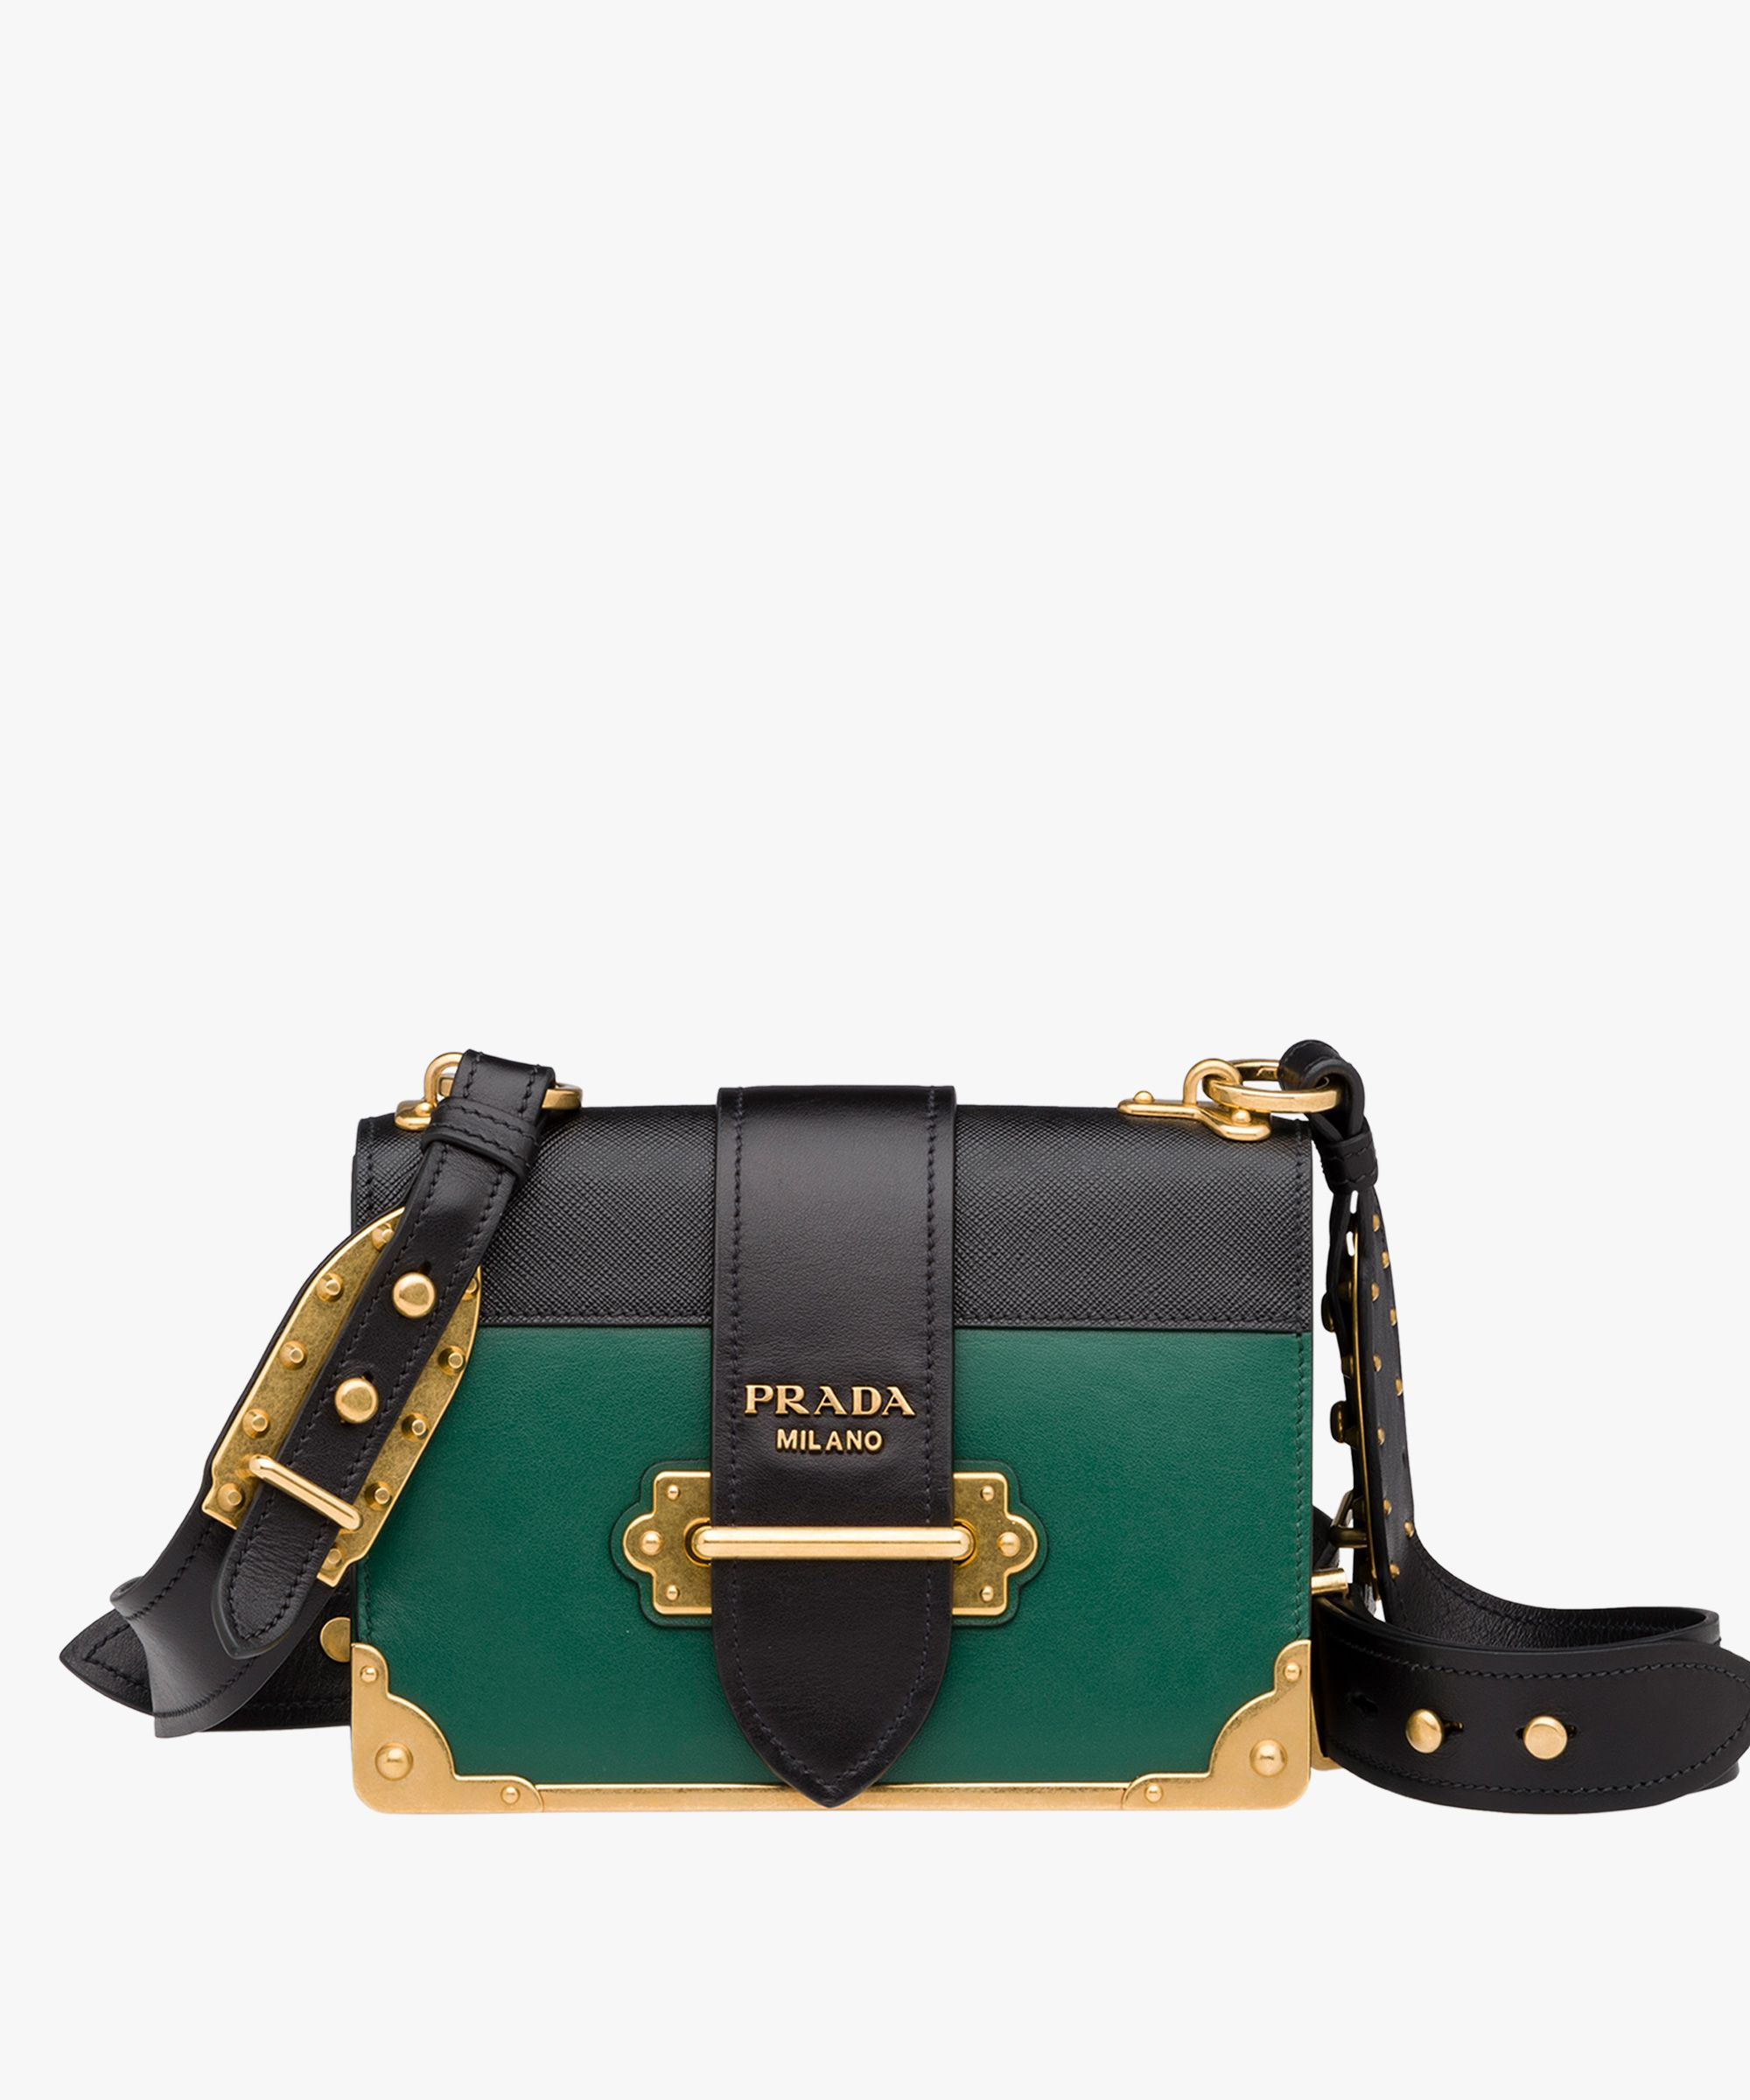 5c9565b63e0a Prada cahier bag - Billiard green + black, or terracotta or cornflower blue